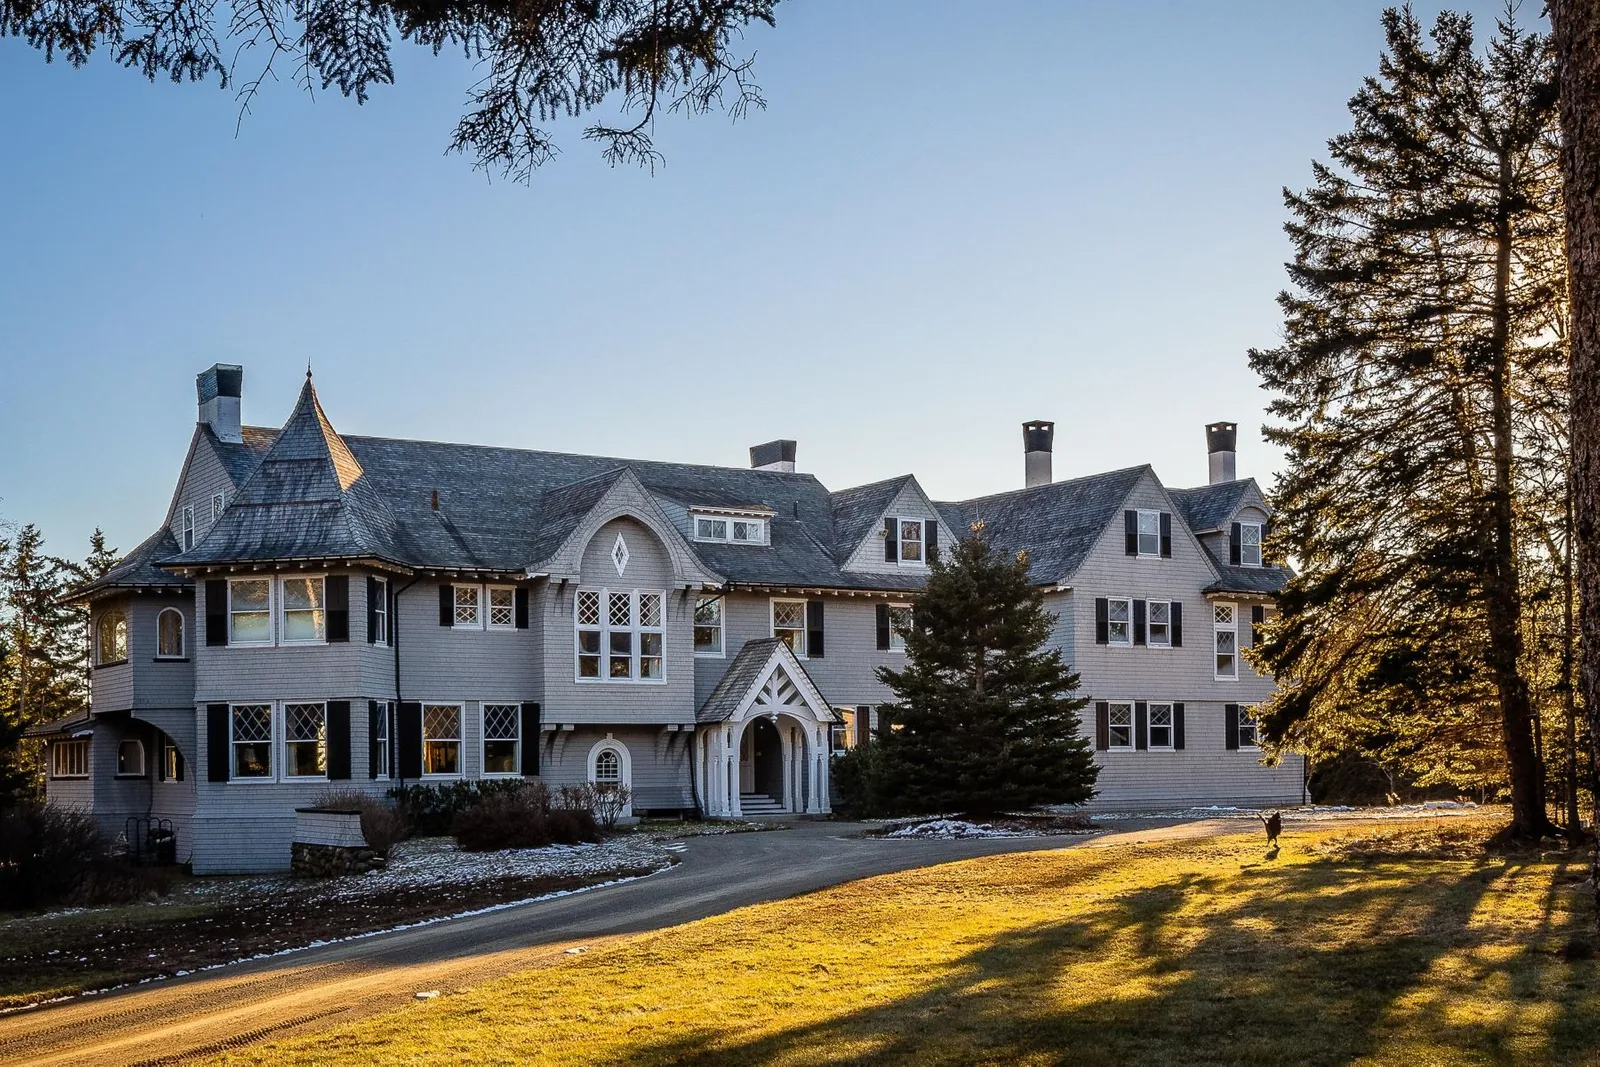 John Travolta Mansion in Maine for sale.